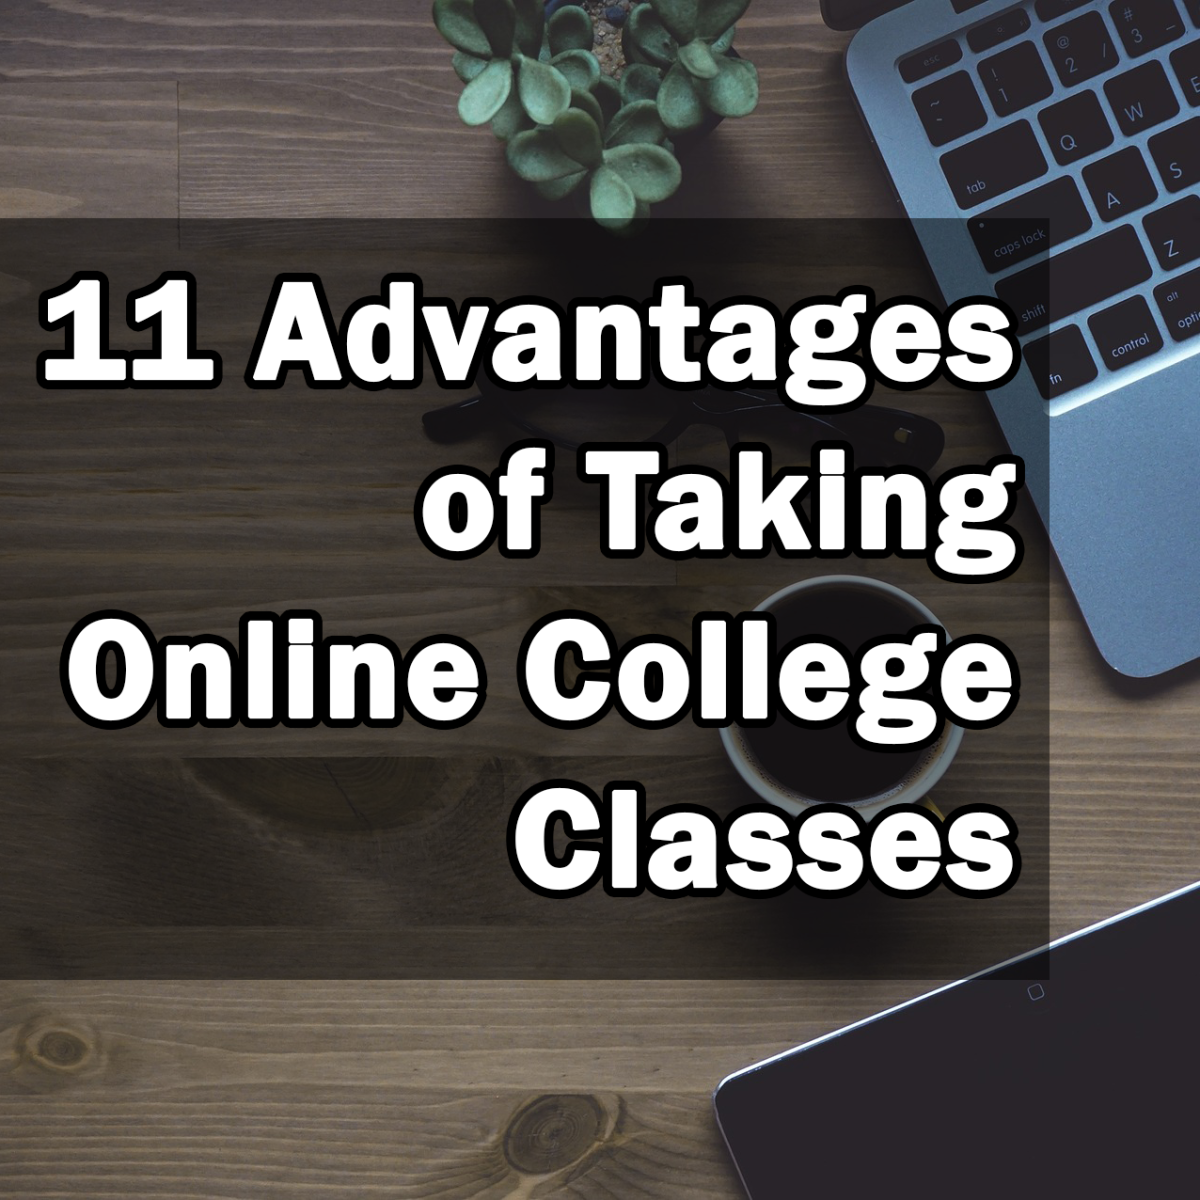 11 Advantages of Taking Online College Classes